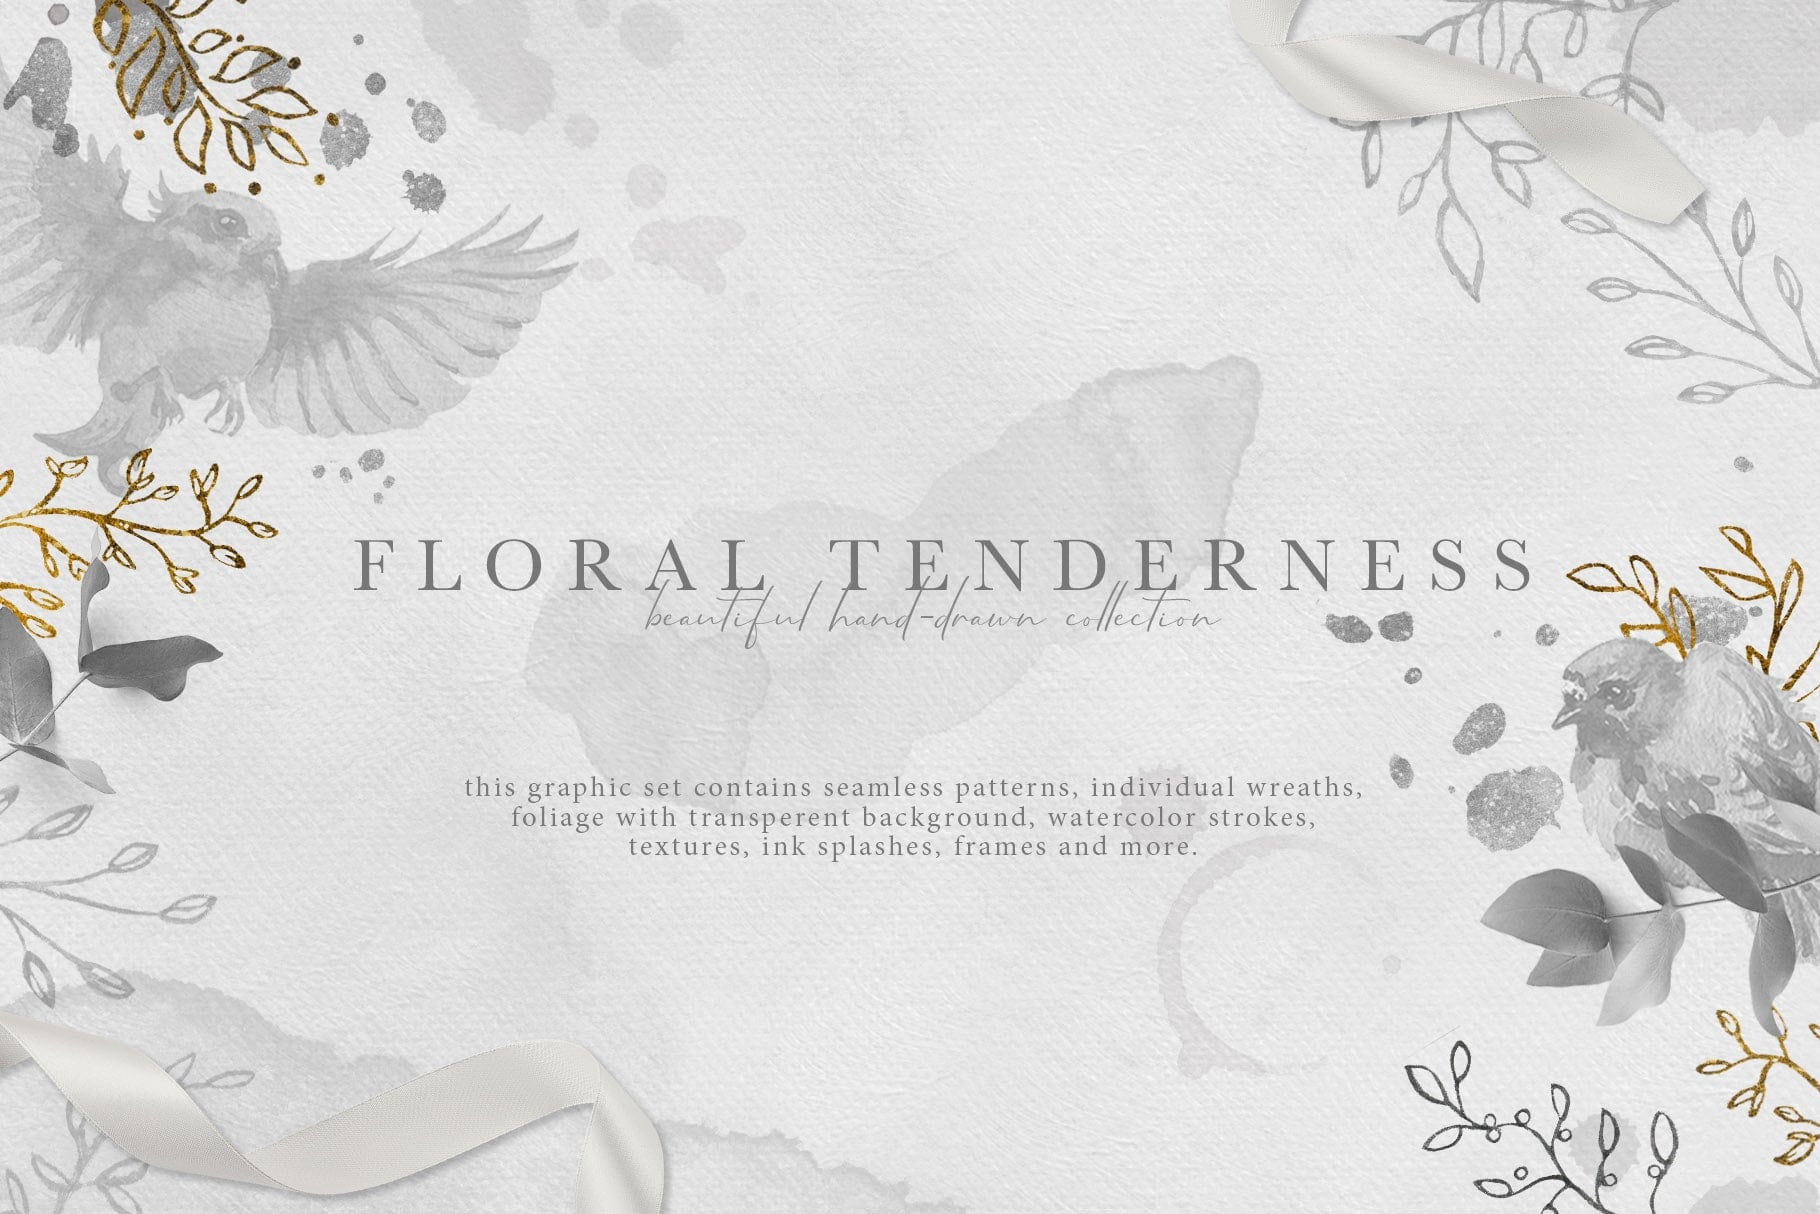 Floral Tenderness: hand-drawn floral elements